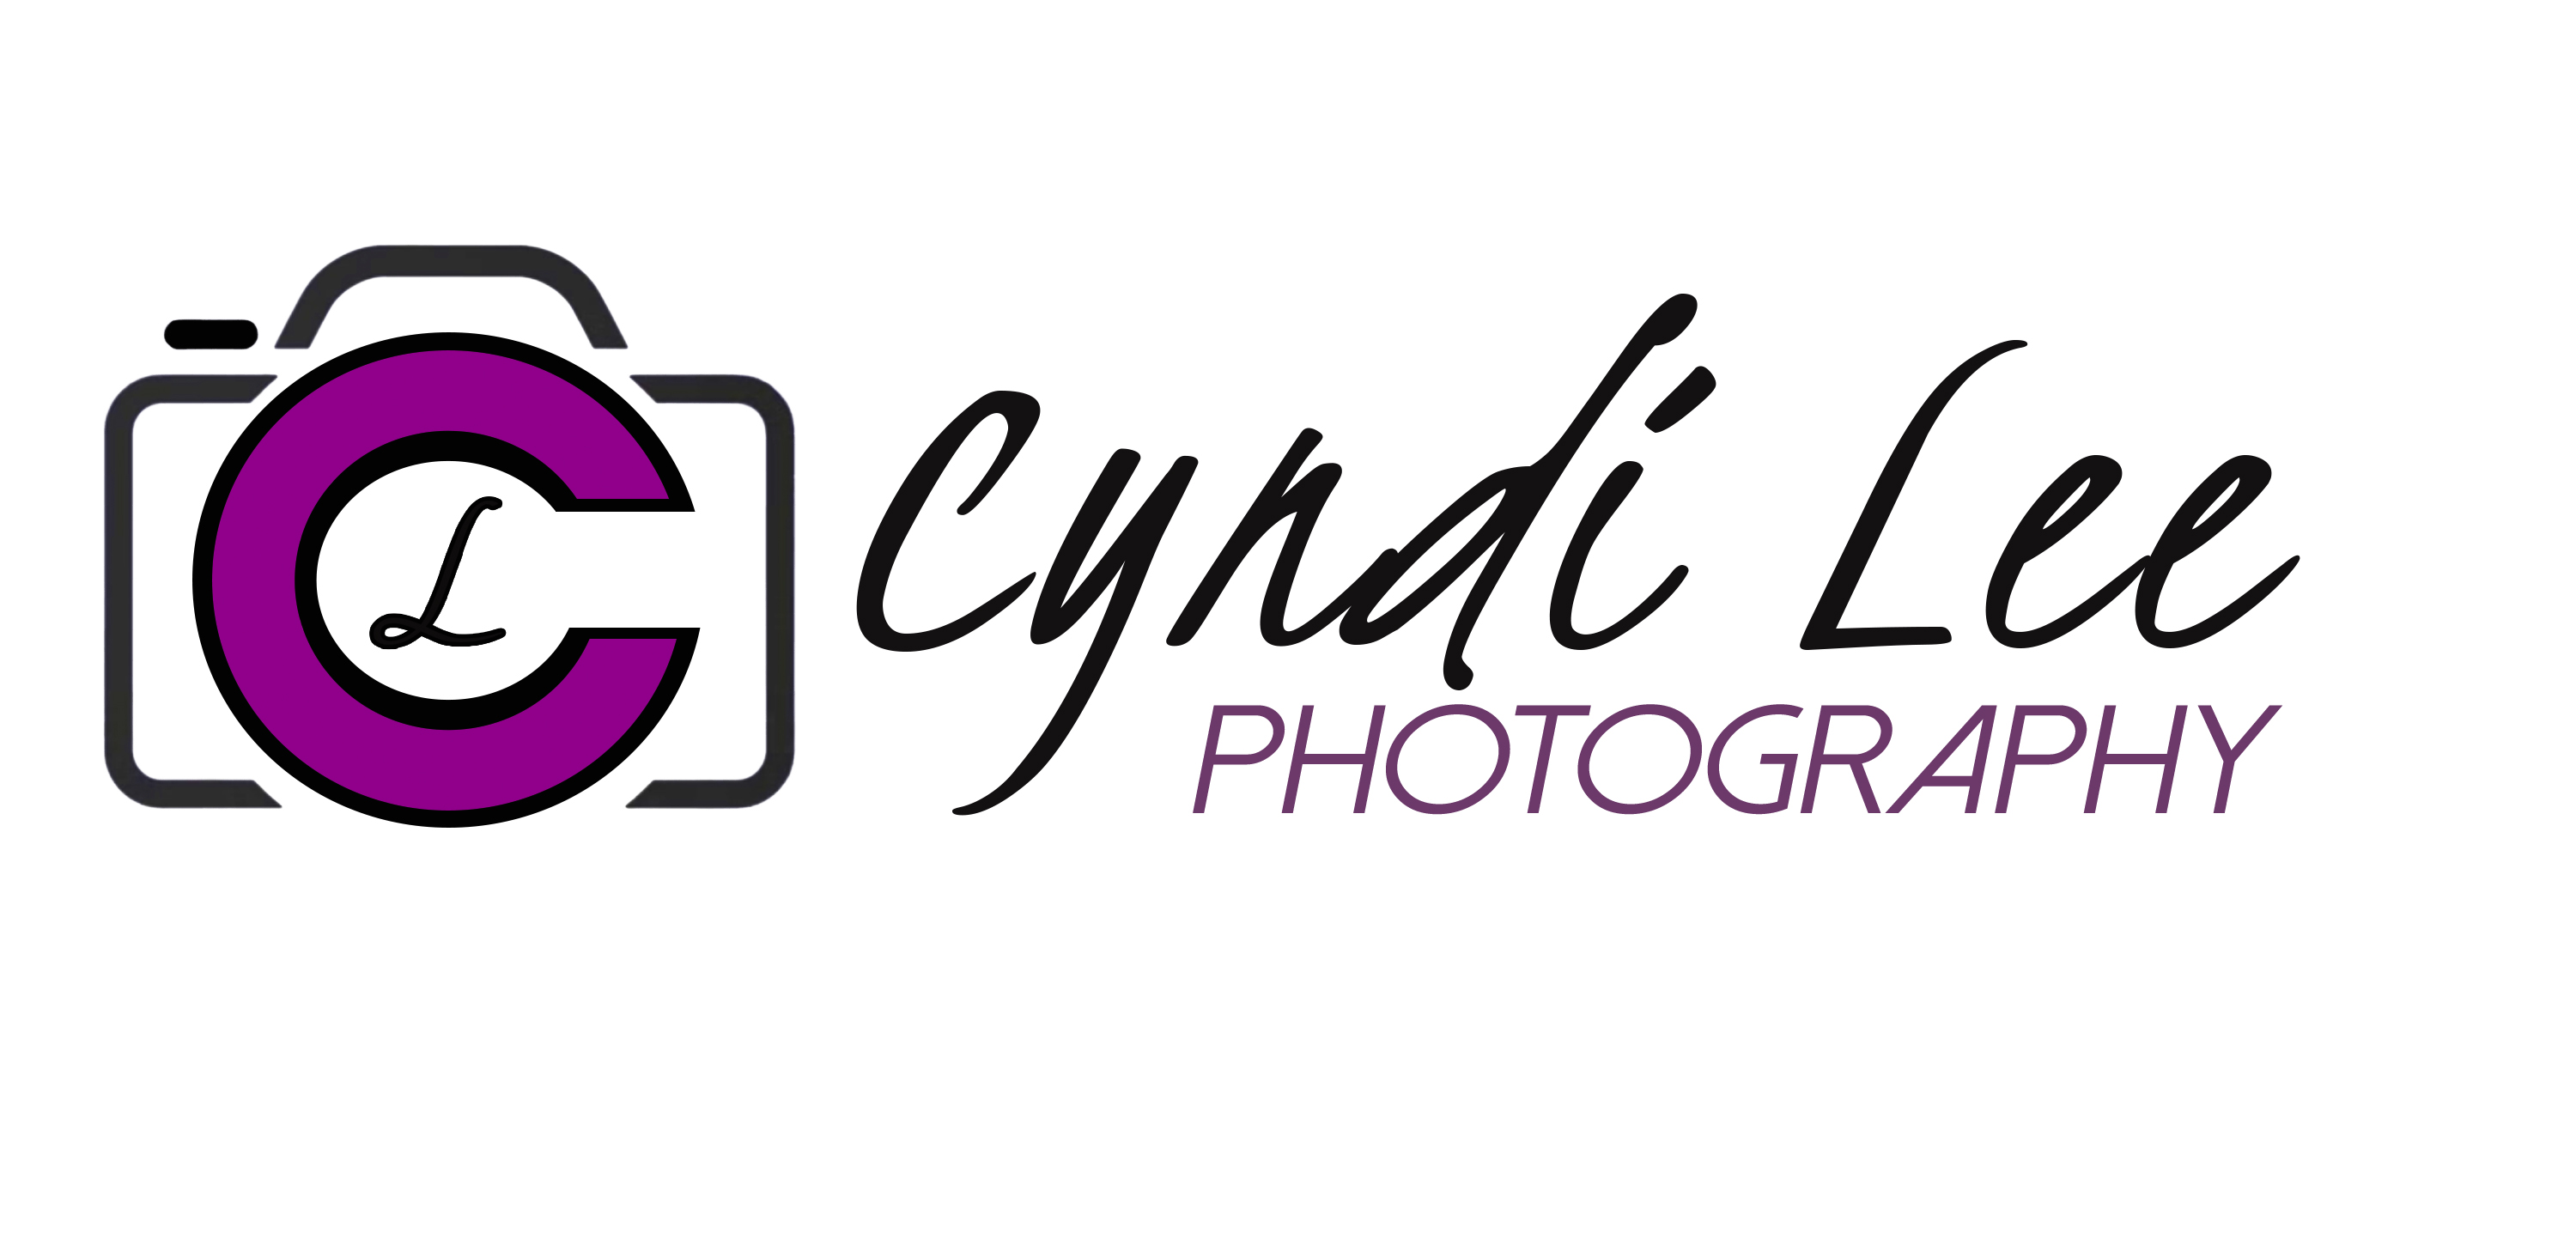 Cyndi Lee Photography